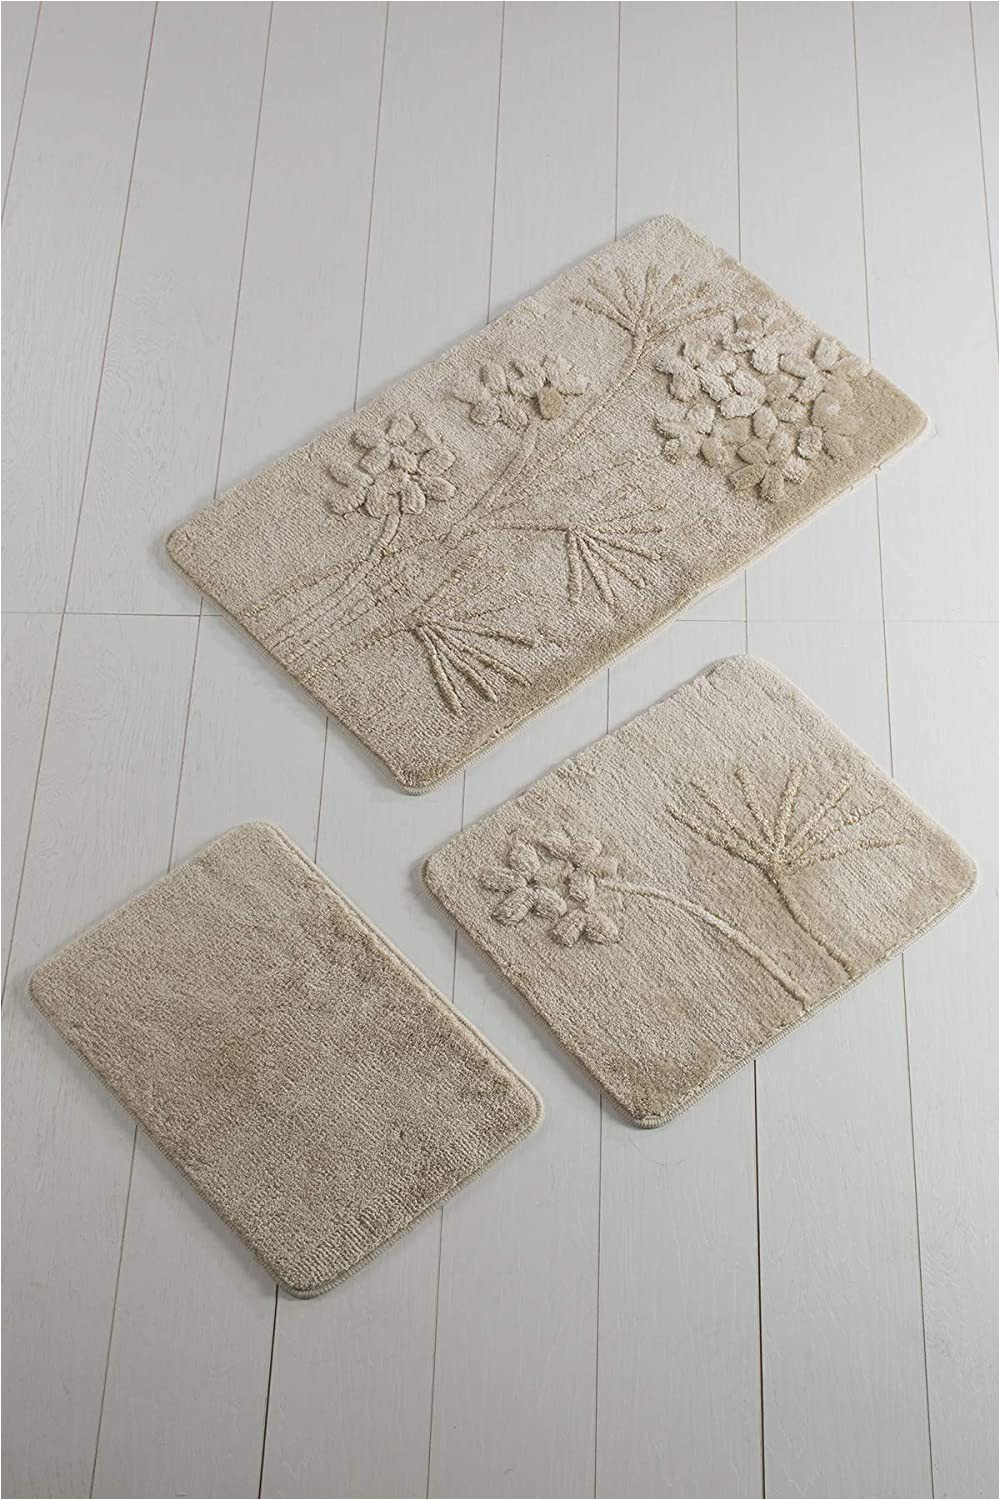 40 X 24 Bath Rug Amazon orchid Beige Pink Bathroom Rugs Set 3 Pieces 24